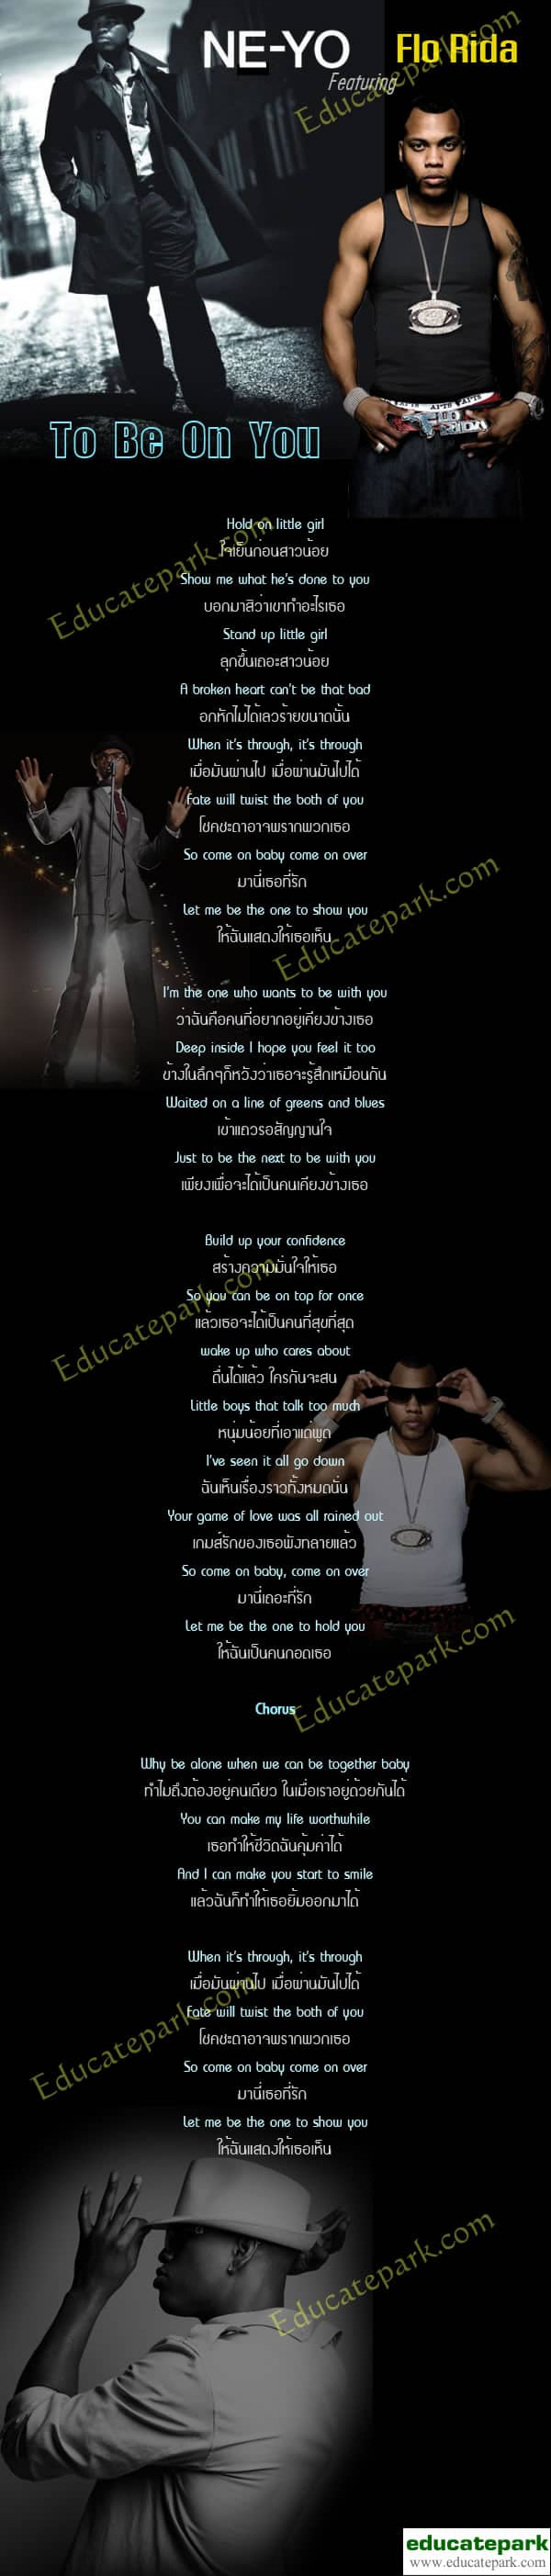 แปลเพลง To Be On You - Ne-Yo featuring Flo Rida